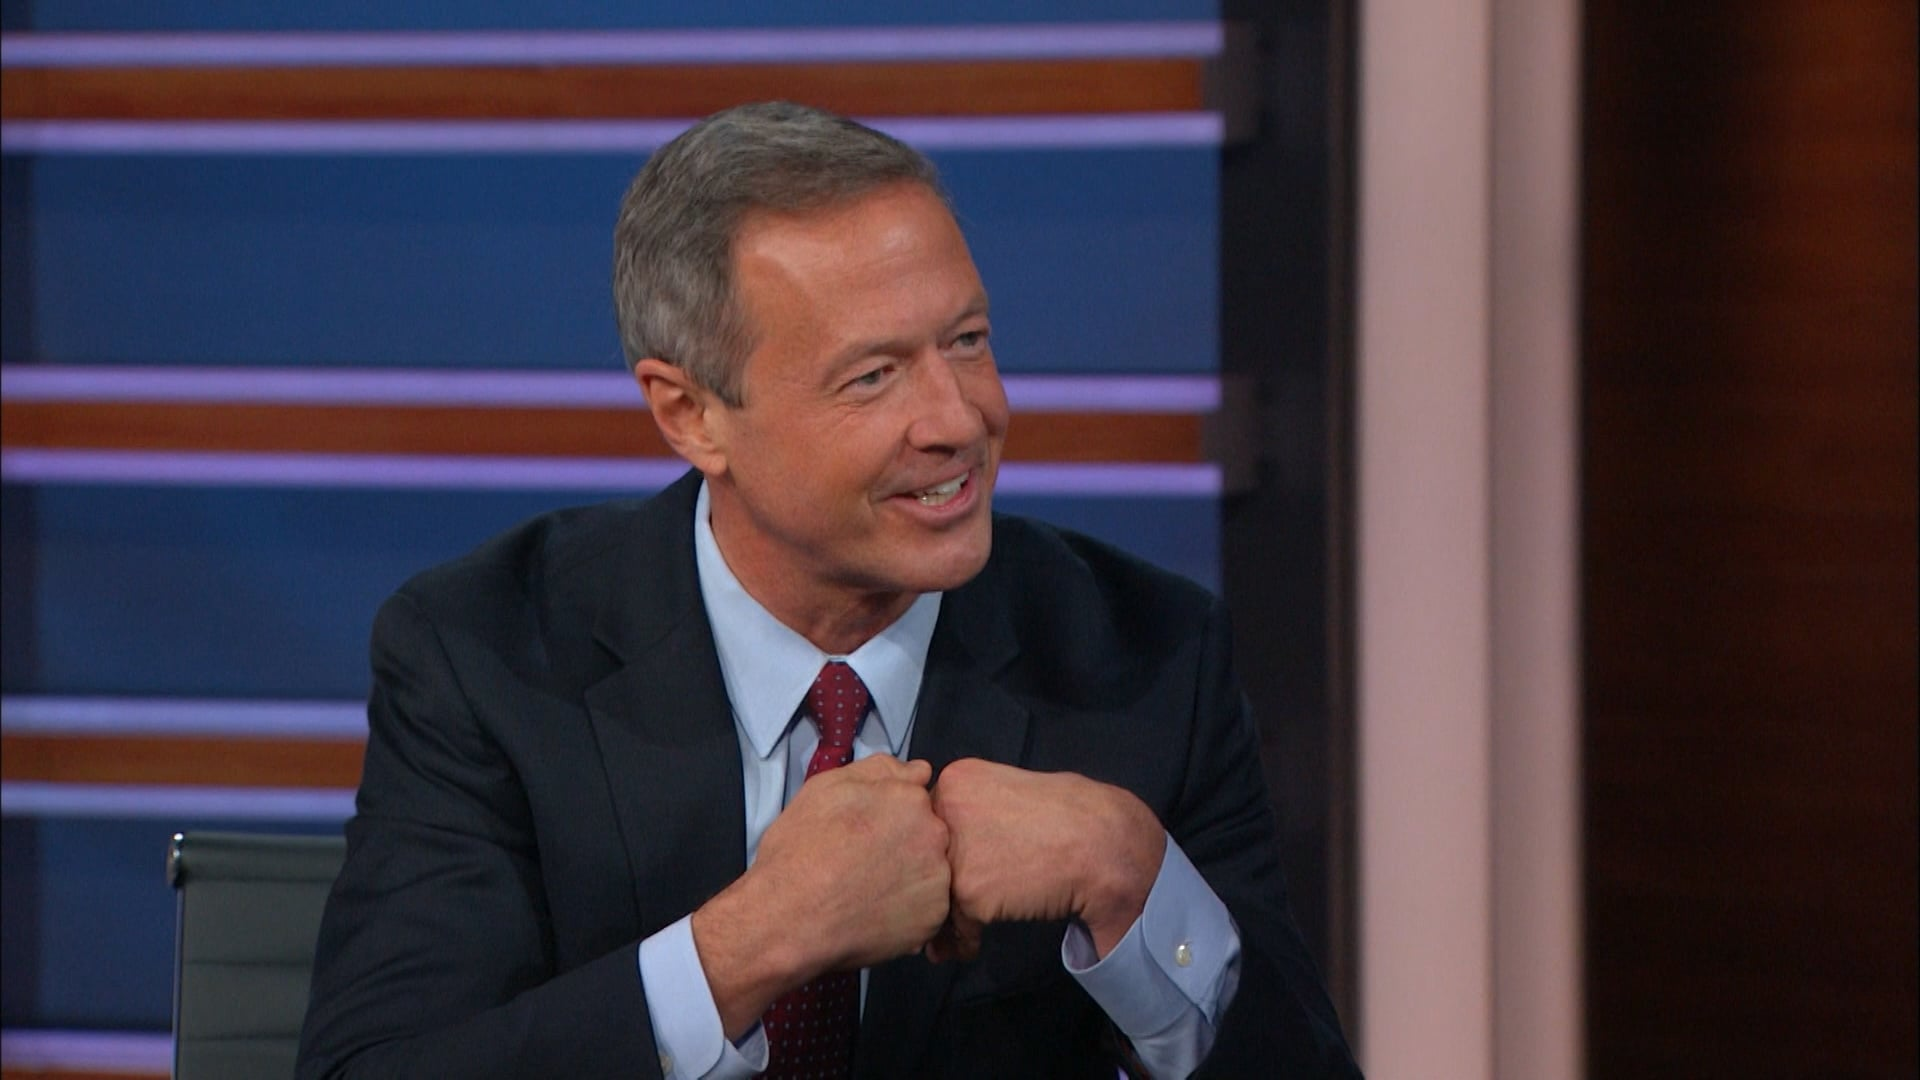 The Daily Show with Trevor Noah Season 21 :Episode 13  Martin O'Malley